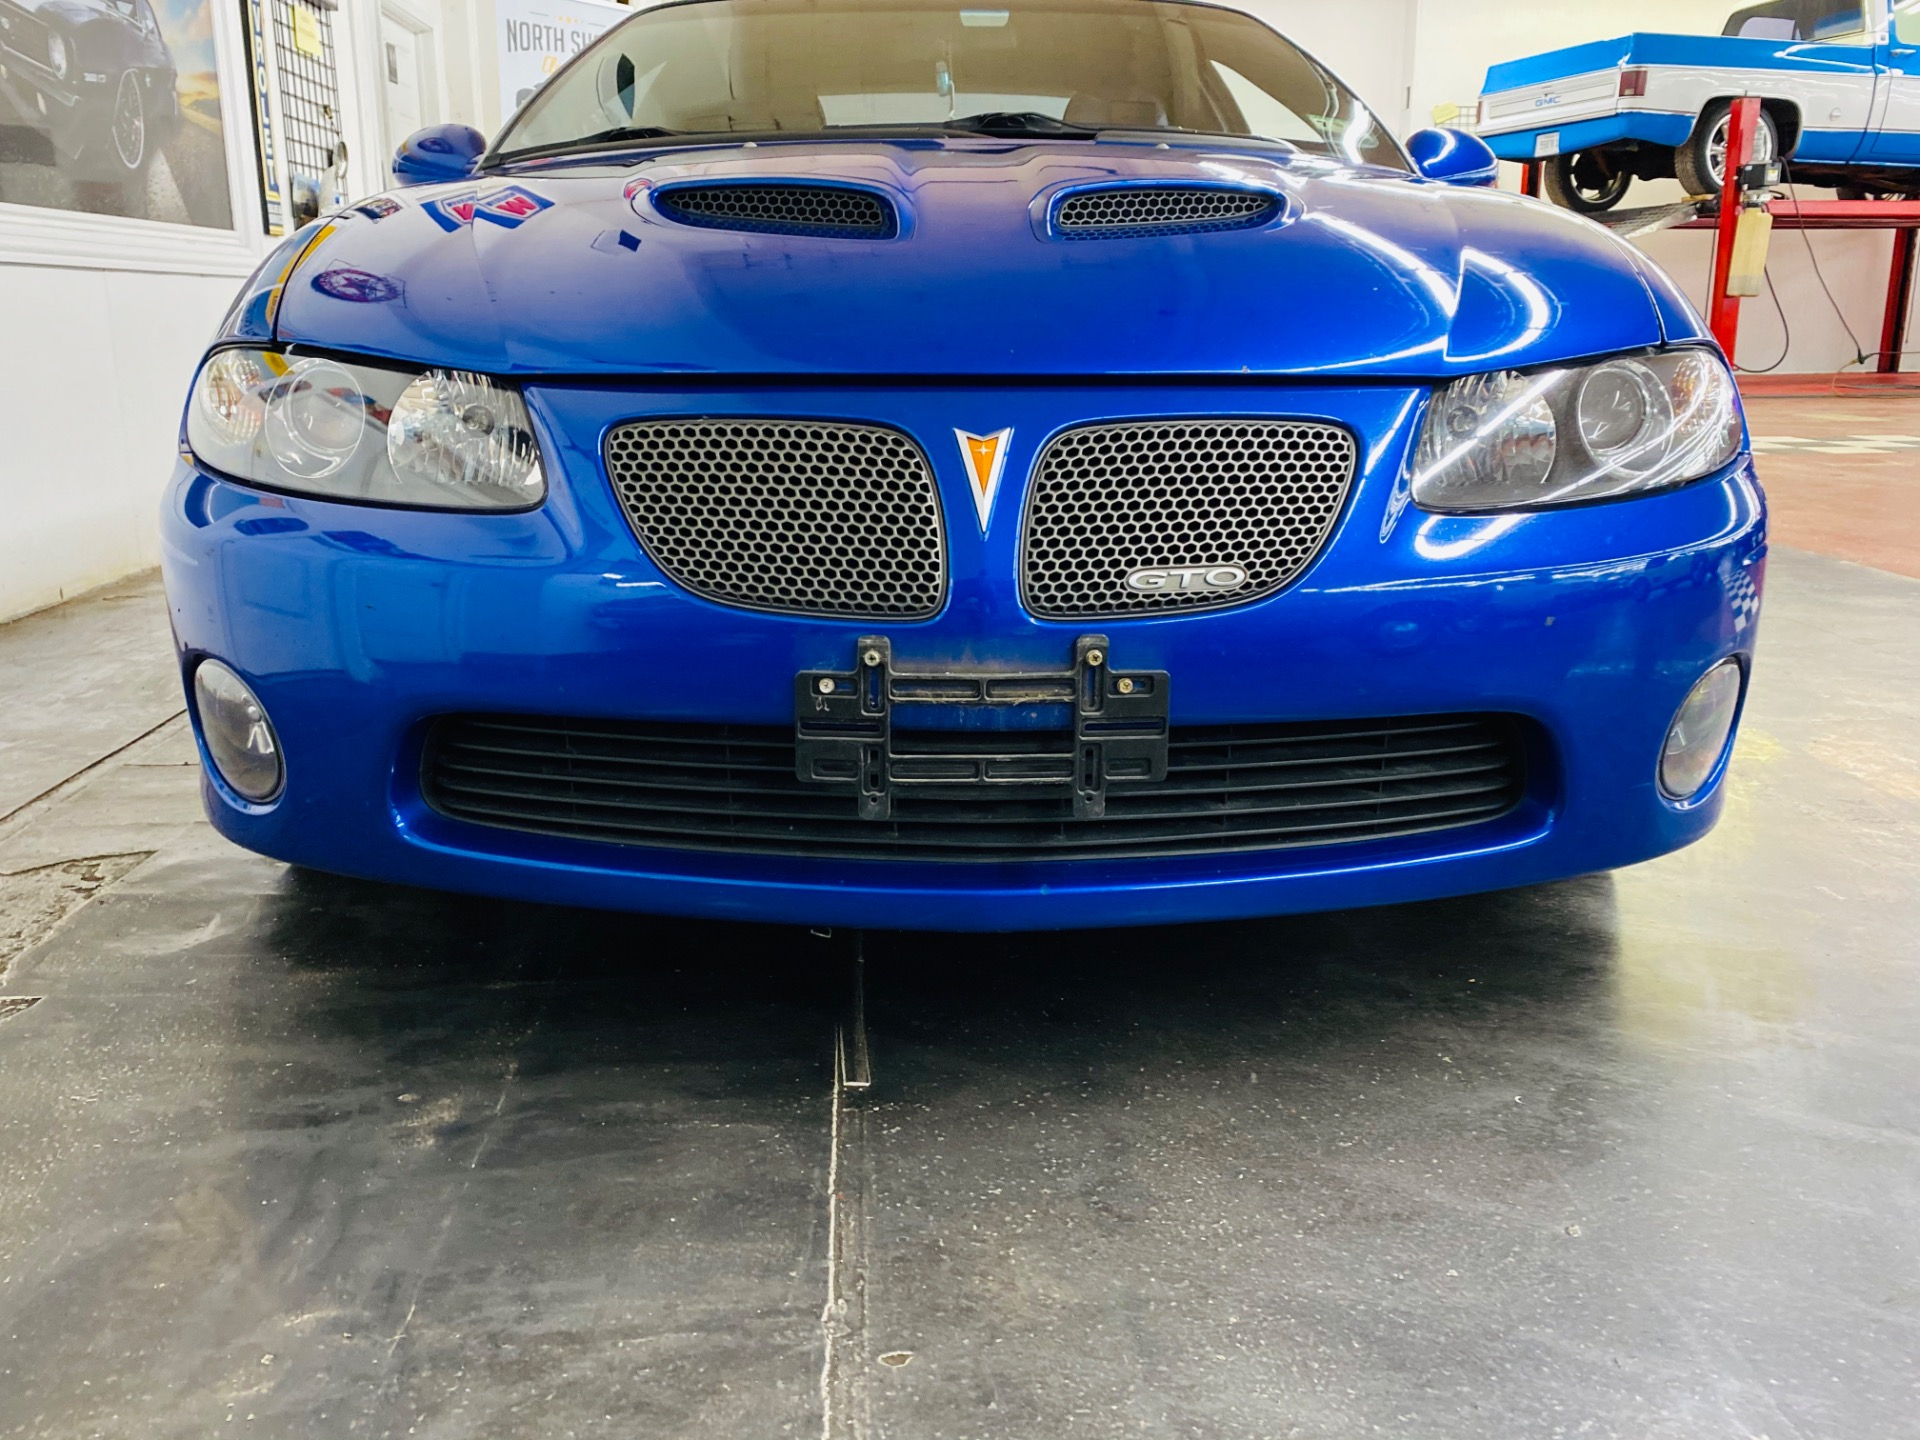 Used 2006 Pontiac GTO -6.0L ENGINE - 6 SPEED MANUAL TRANS - LOW MILES - | Mundelein, IL